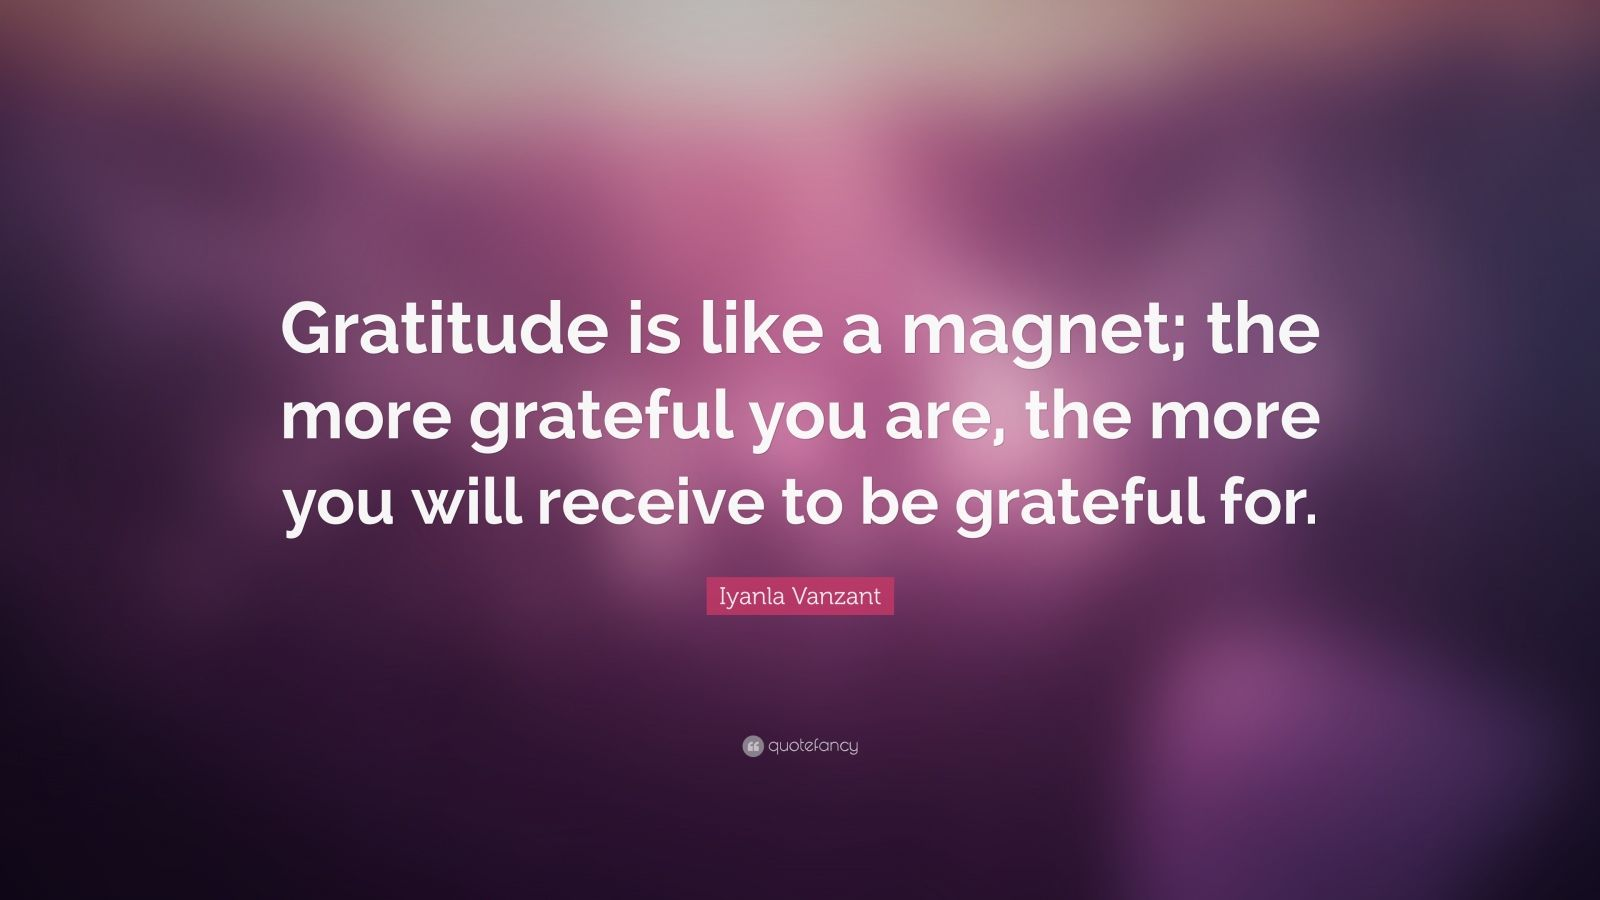 """Iyanla Vanzant Quote: """"Gratitude is like a magnet; the more grateful you are, the more you will receive to be grateful for."""""""